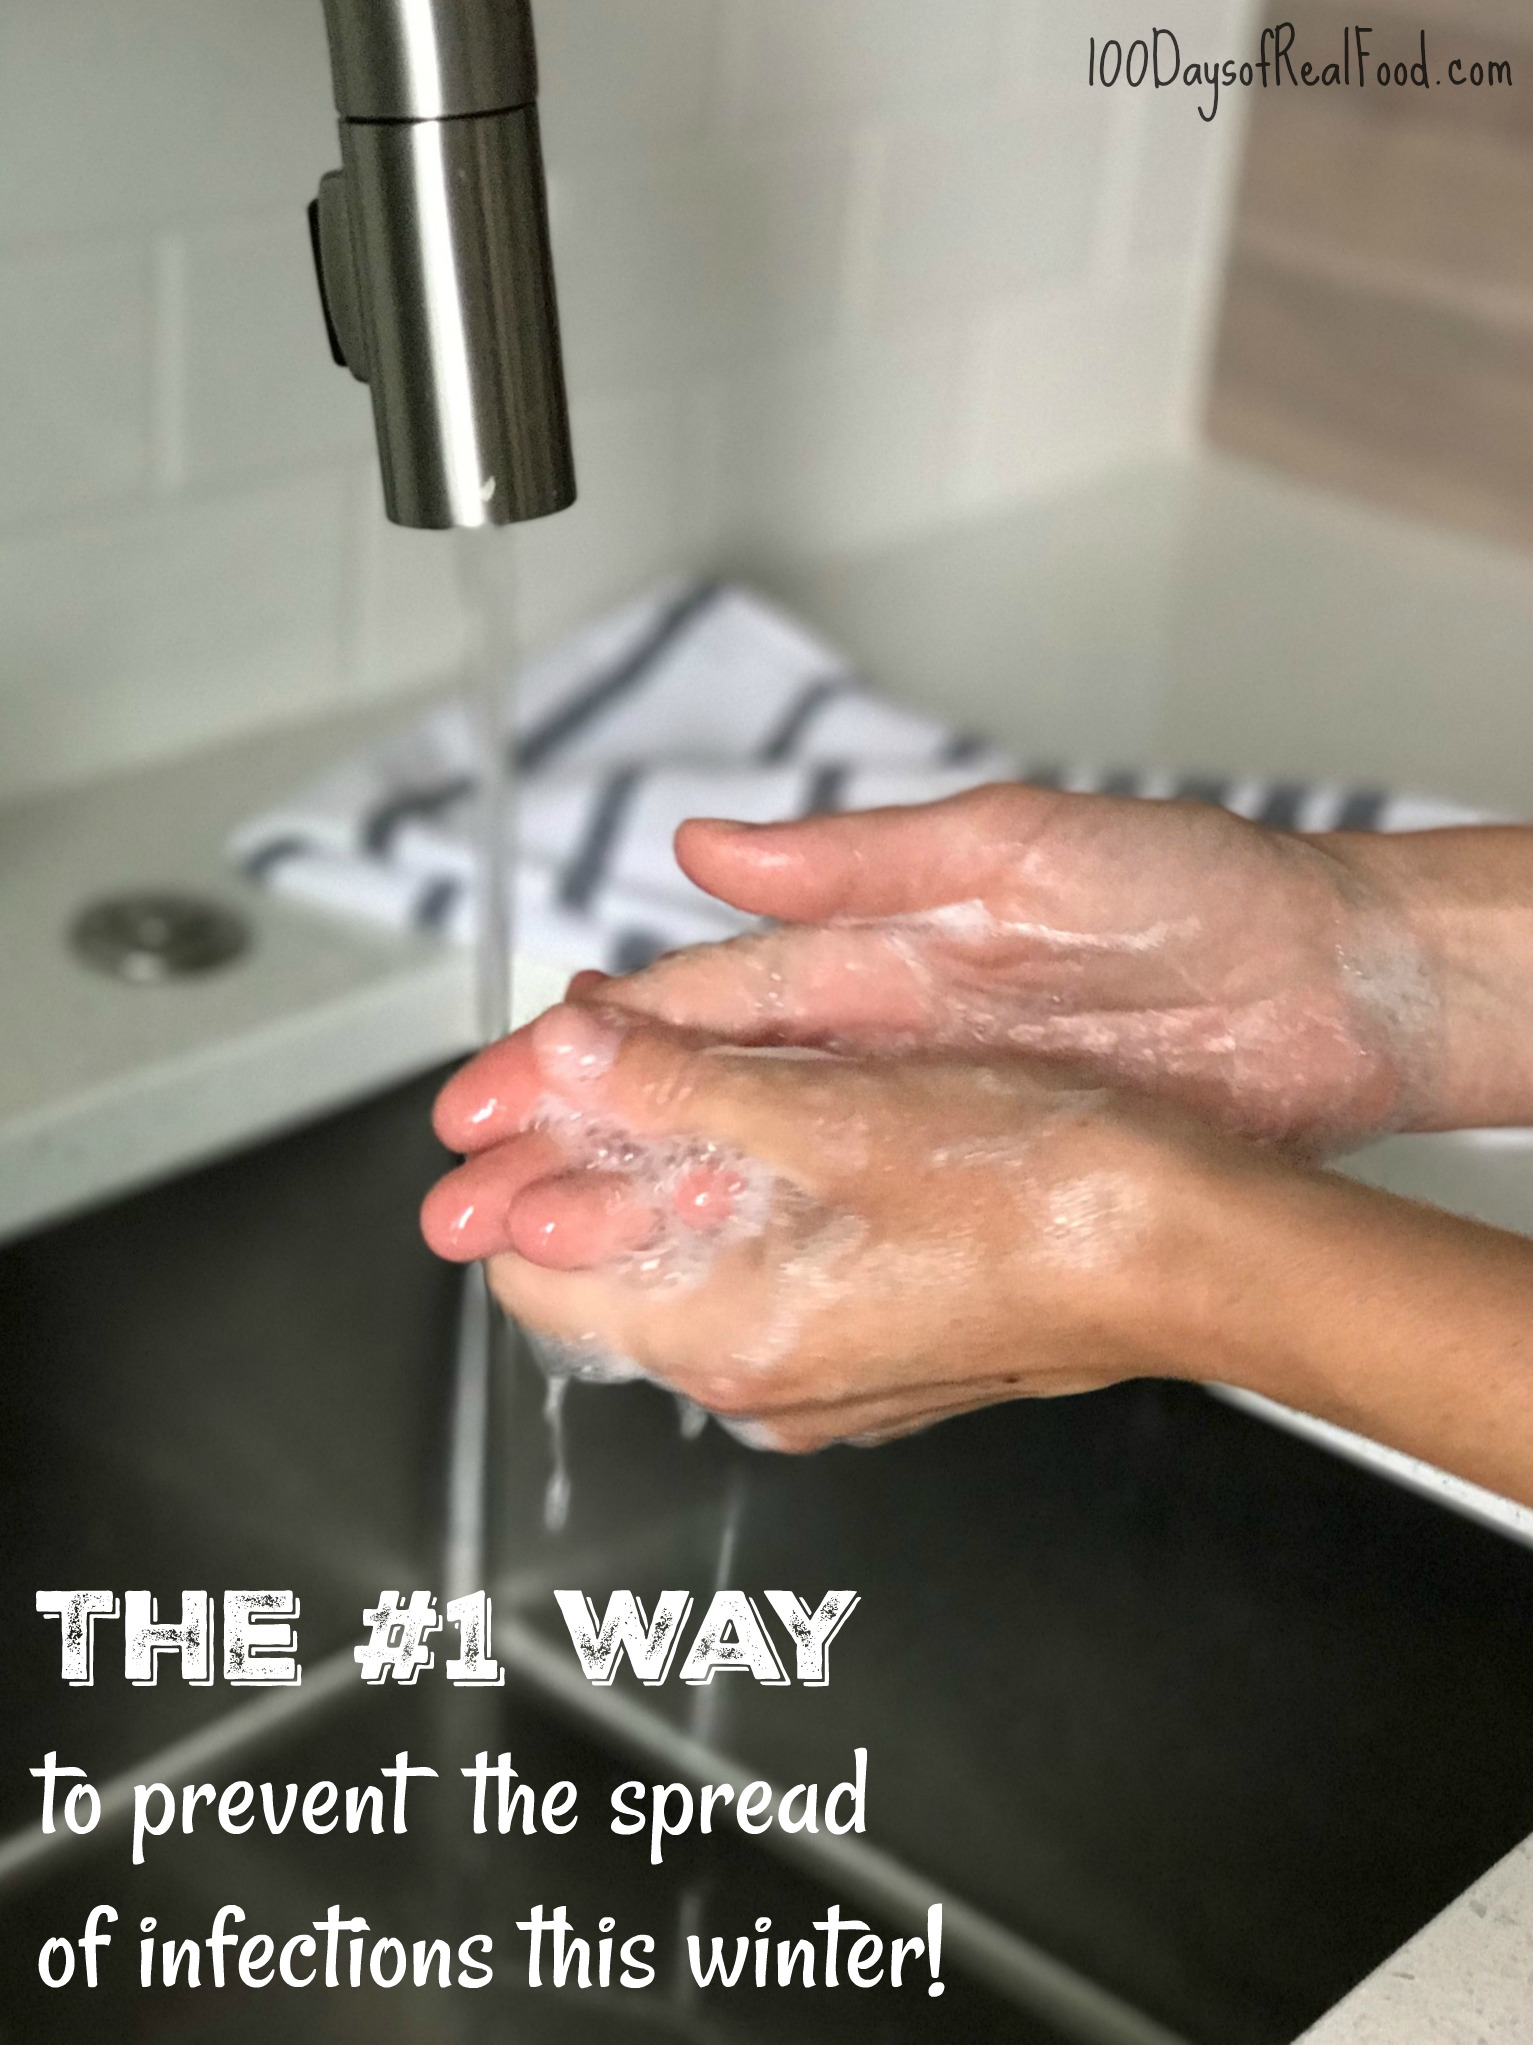 Minimize germs by washing hands with non-toxic soap